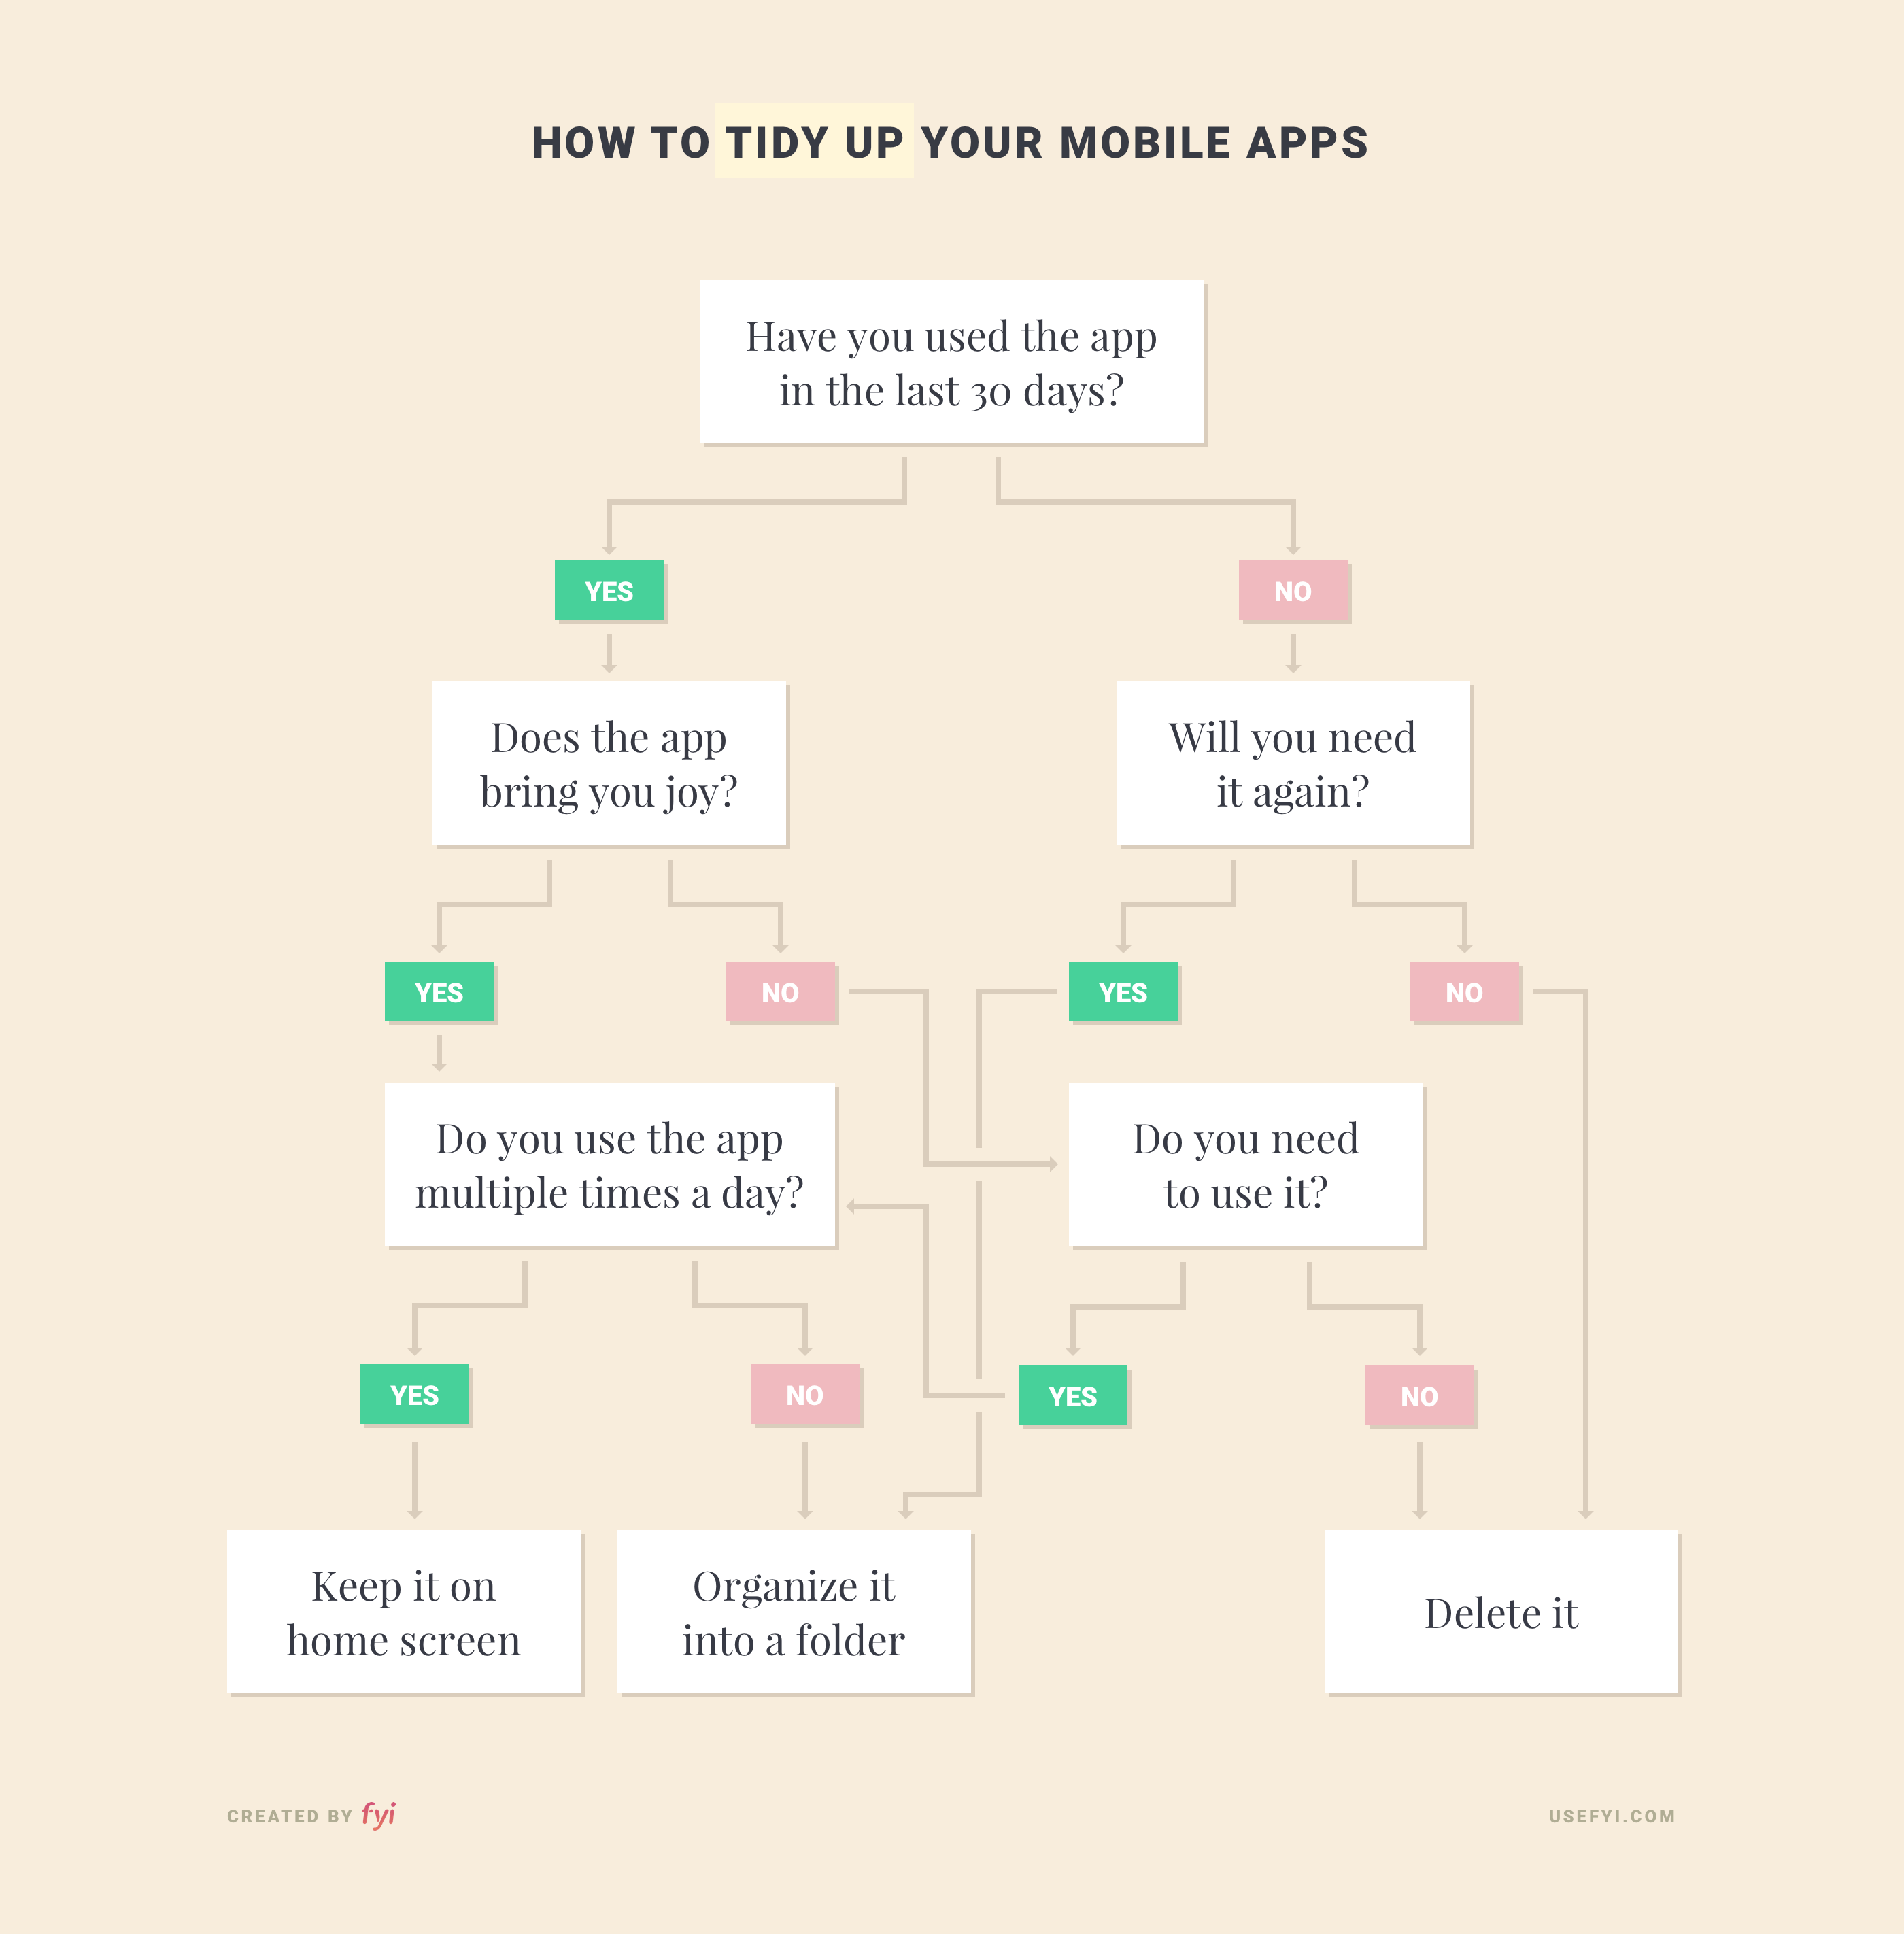 How to tidy up your mobile apps